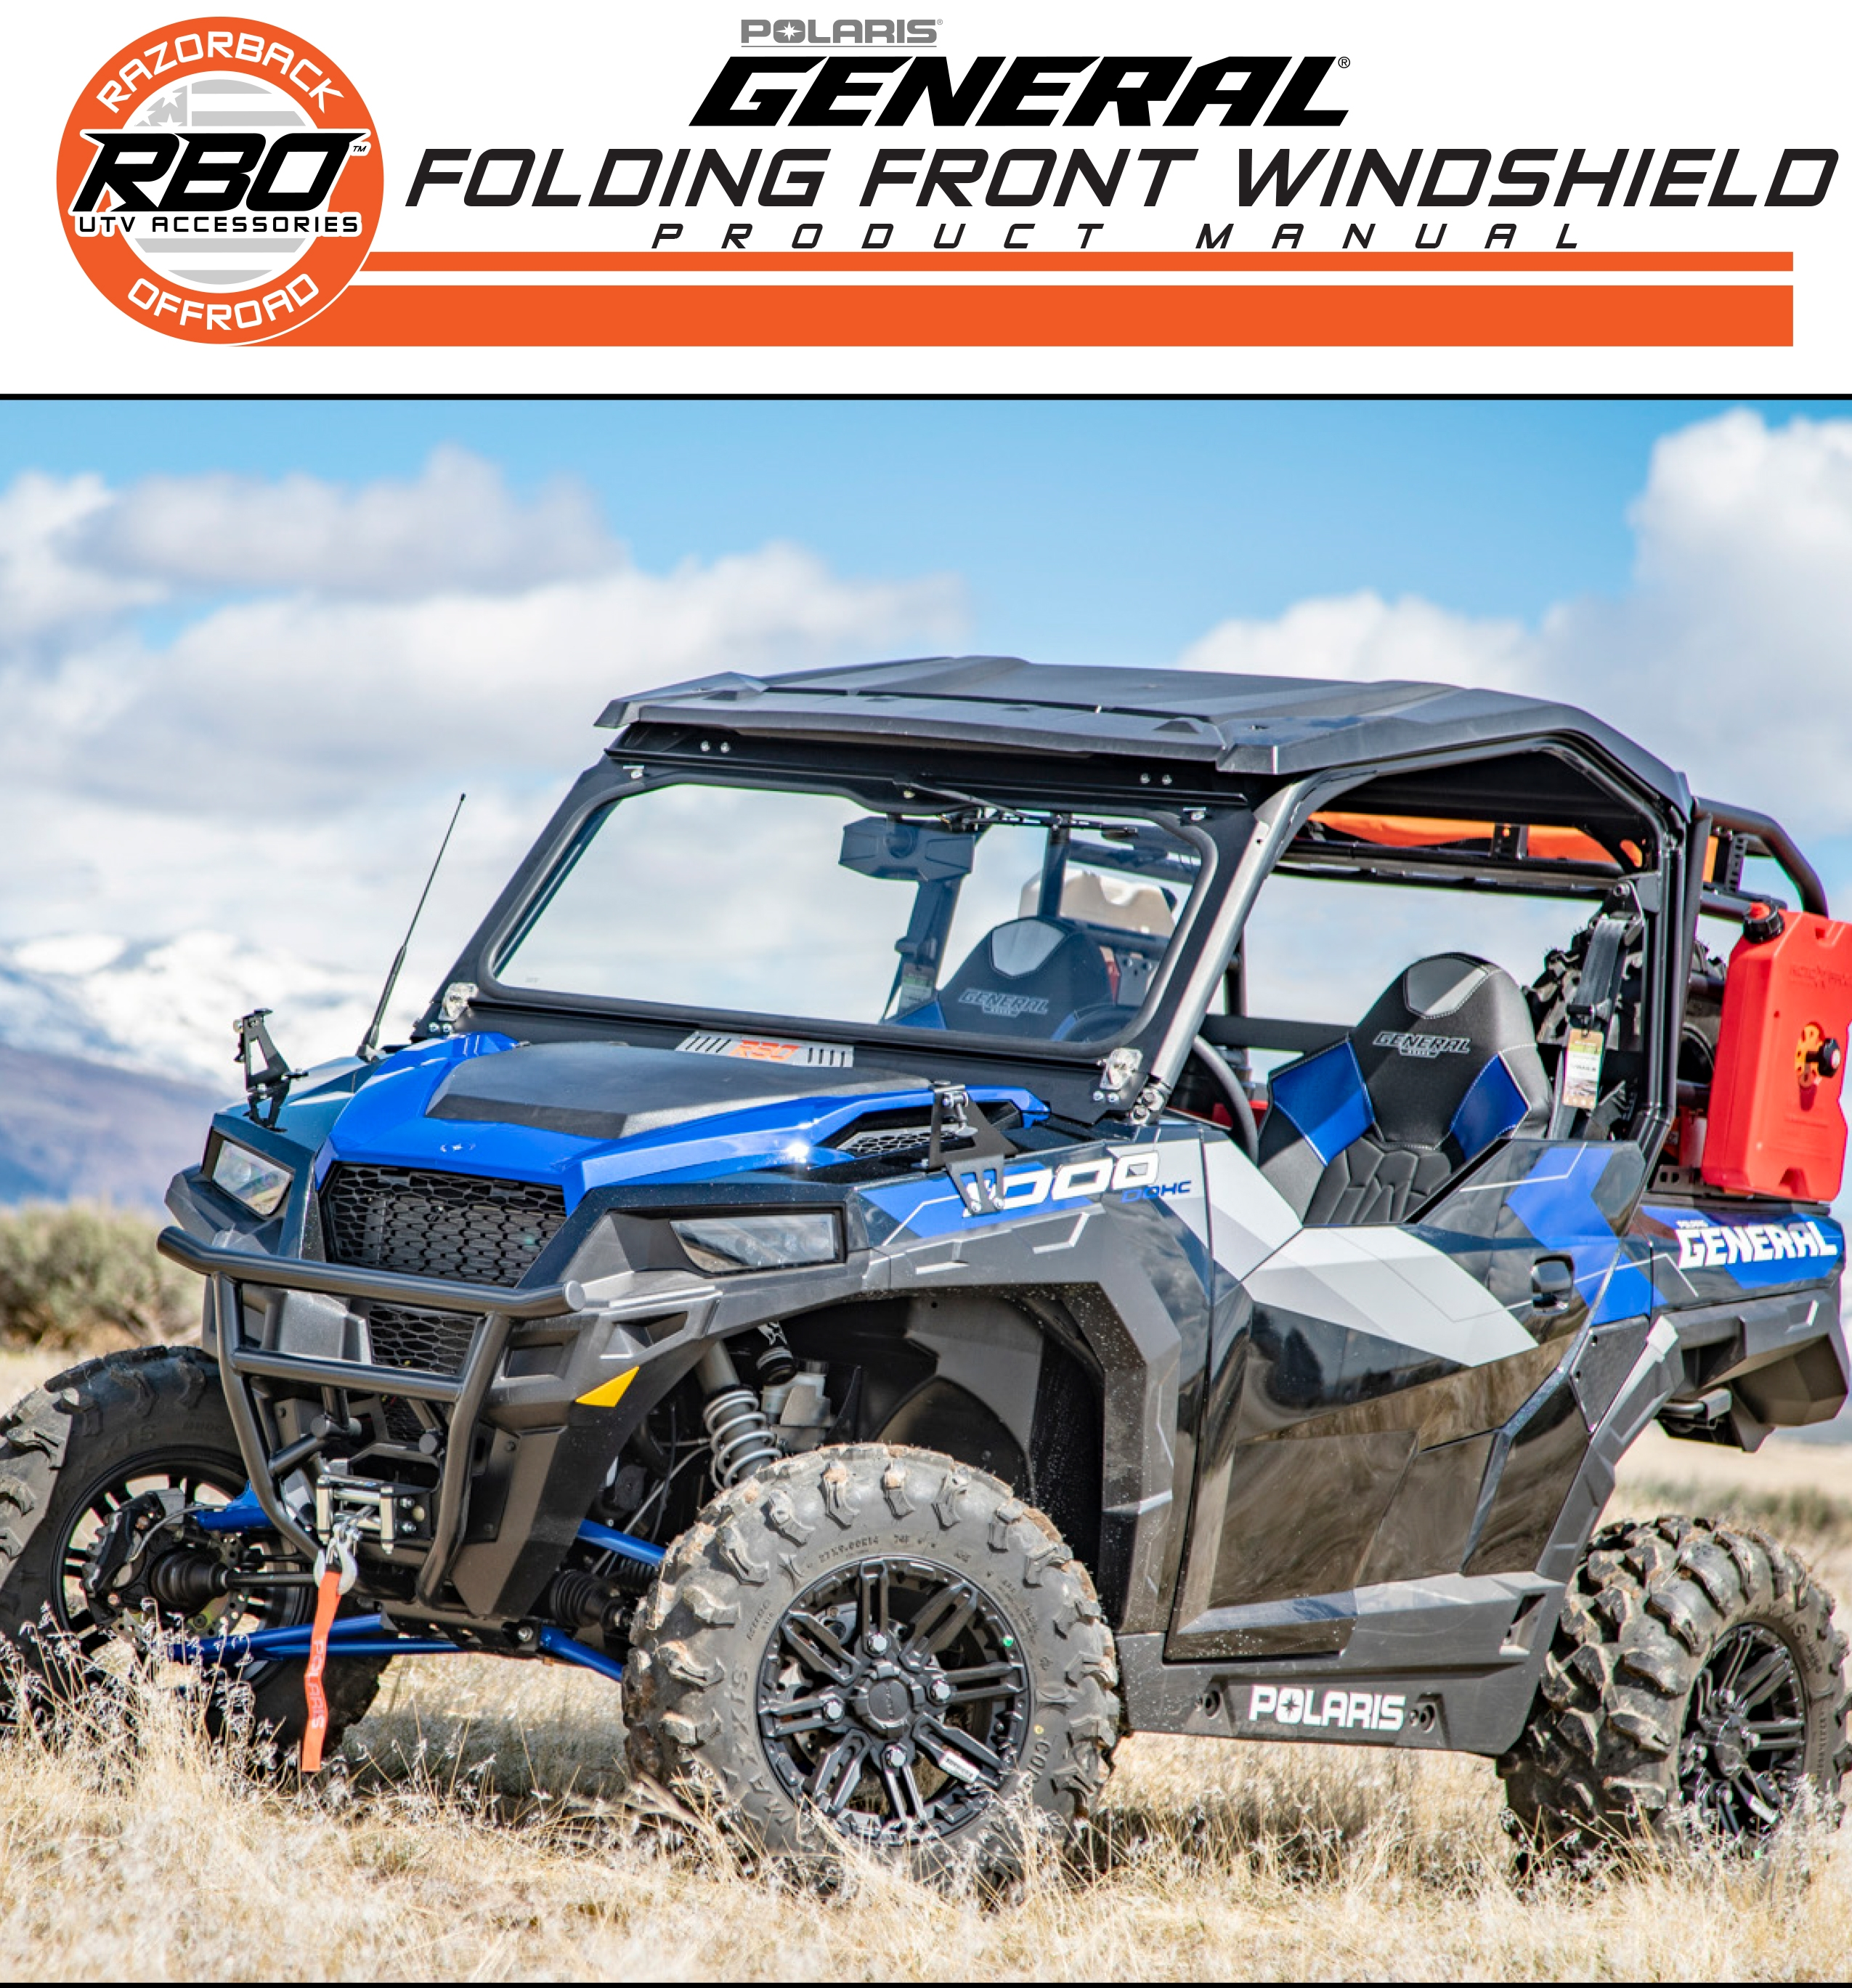 Polaris General Folding Front Windshield Product Manual